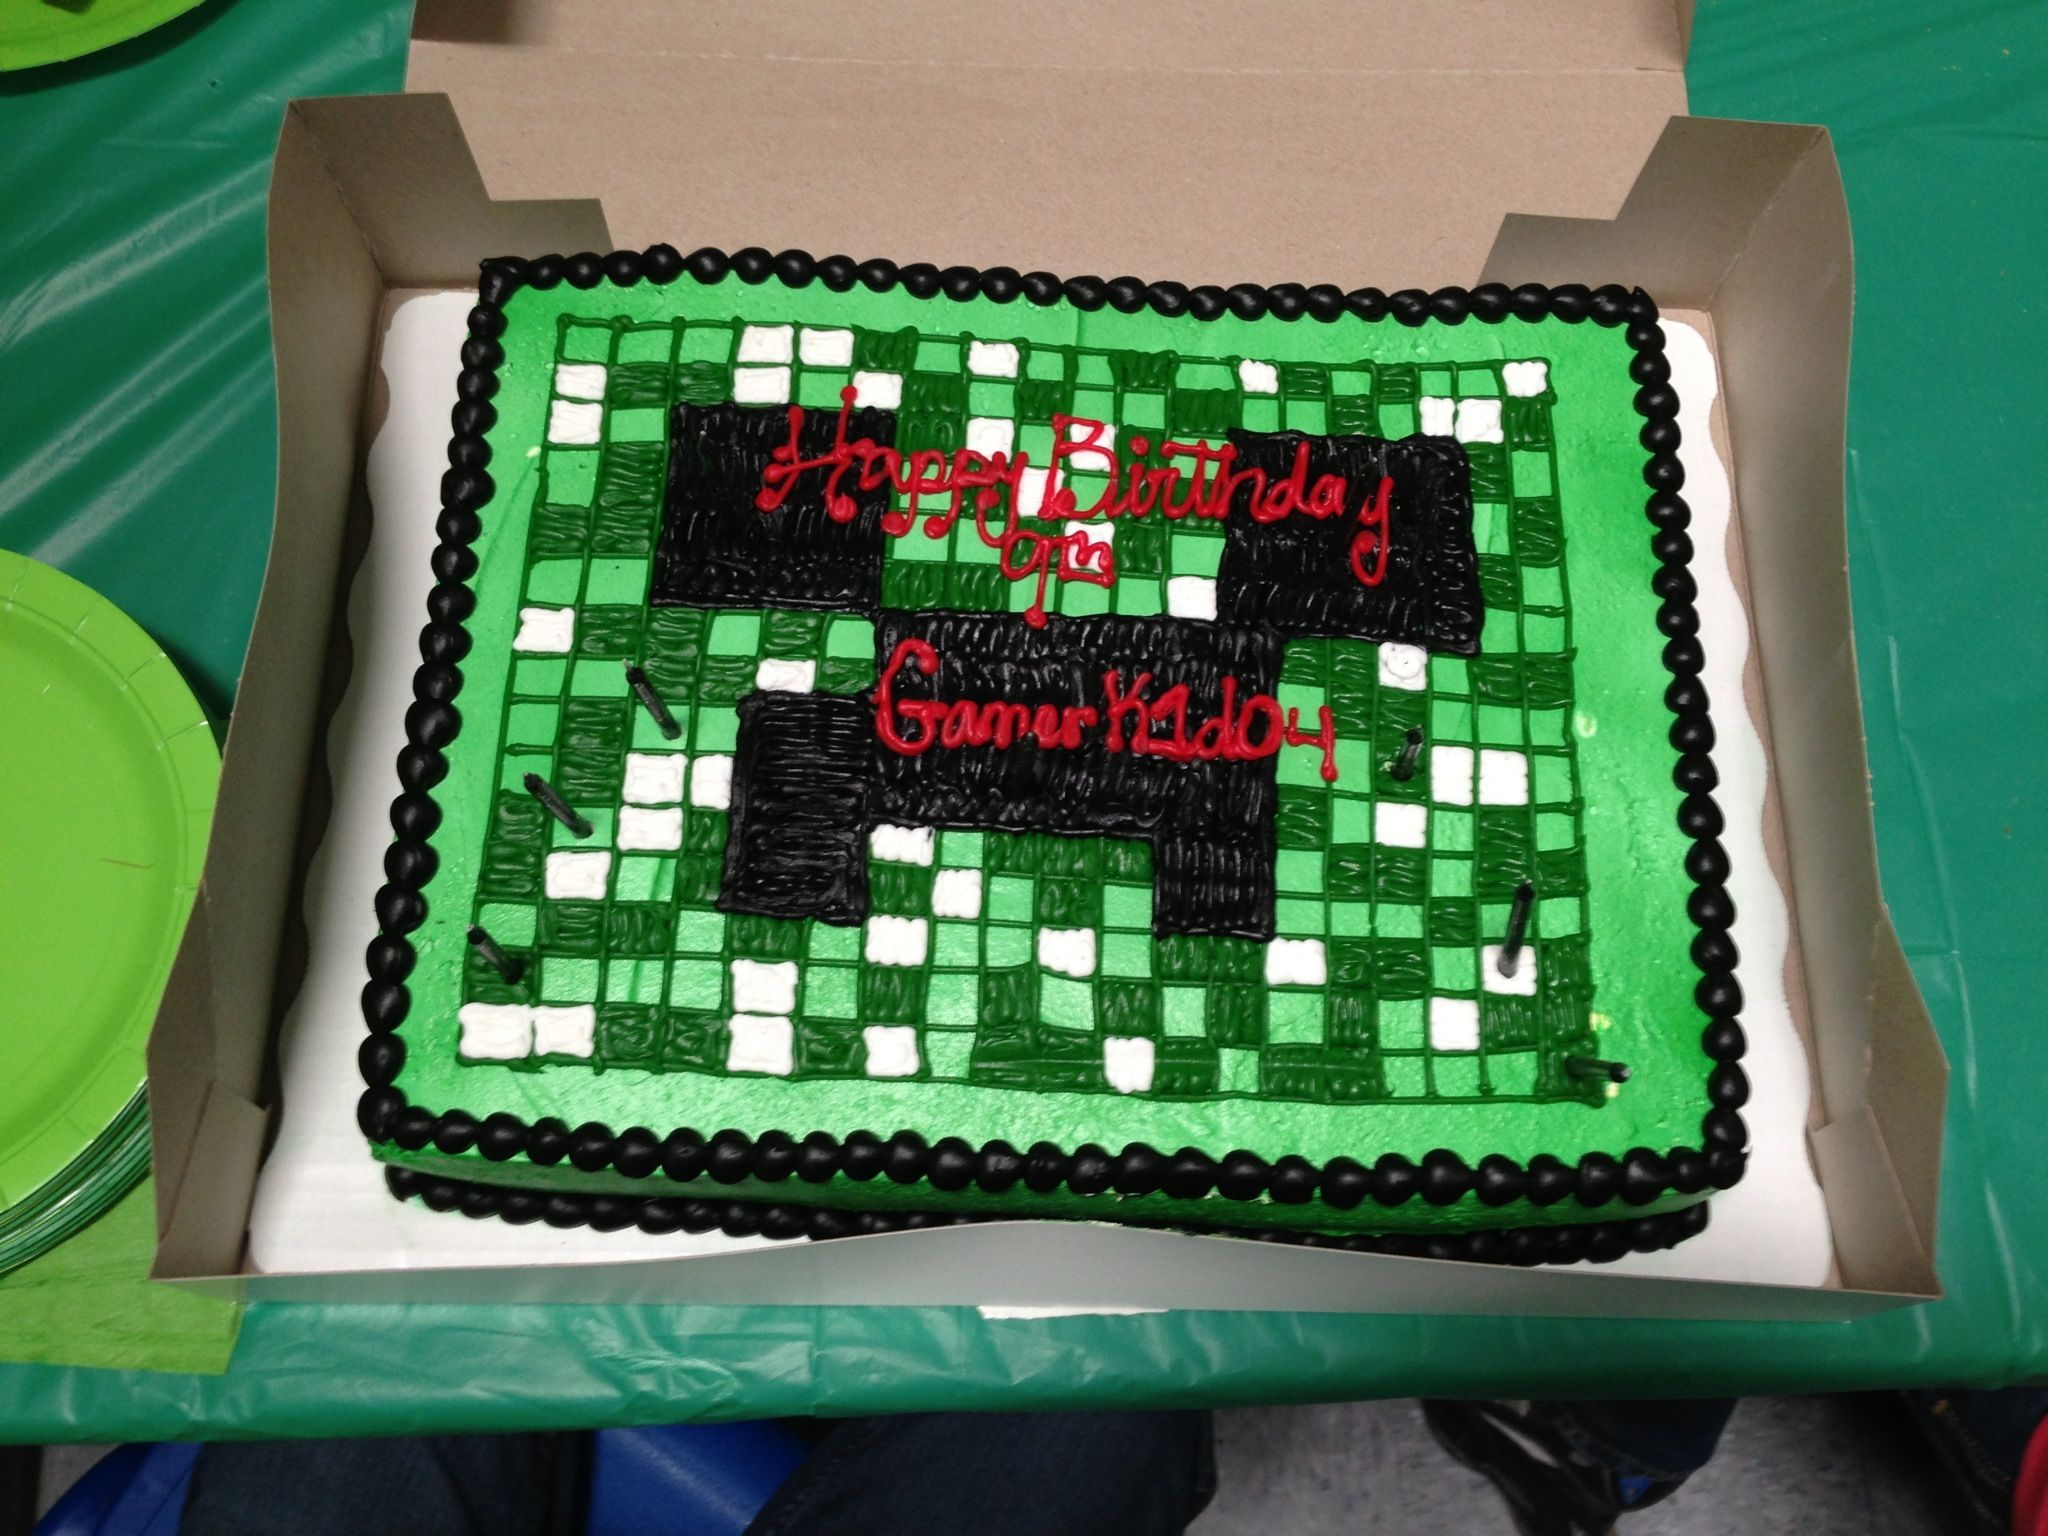 Ts Minecraft Birthday Cake Got It Made At Walmart A Little Messed Up Graphic Wisebut Everyone Still Loved Marble And Bavarian Cream Filling